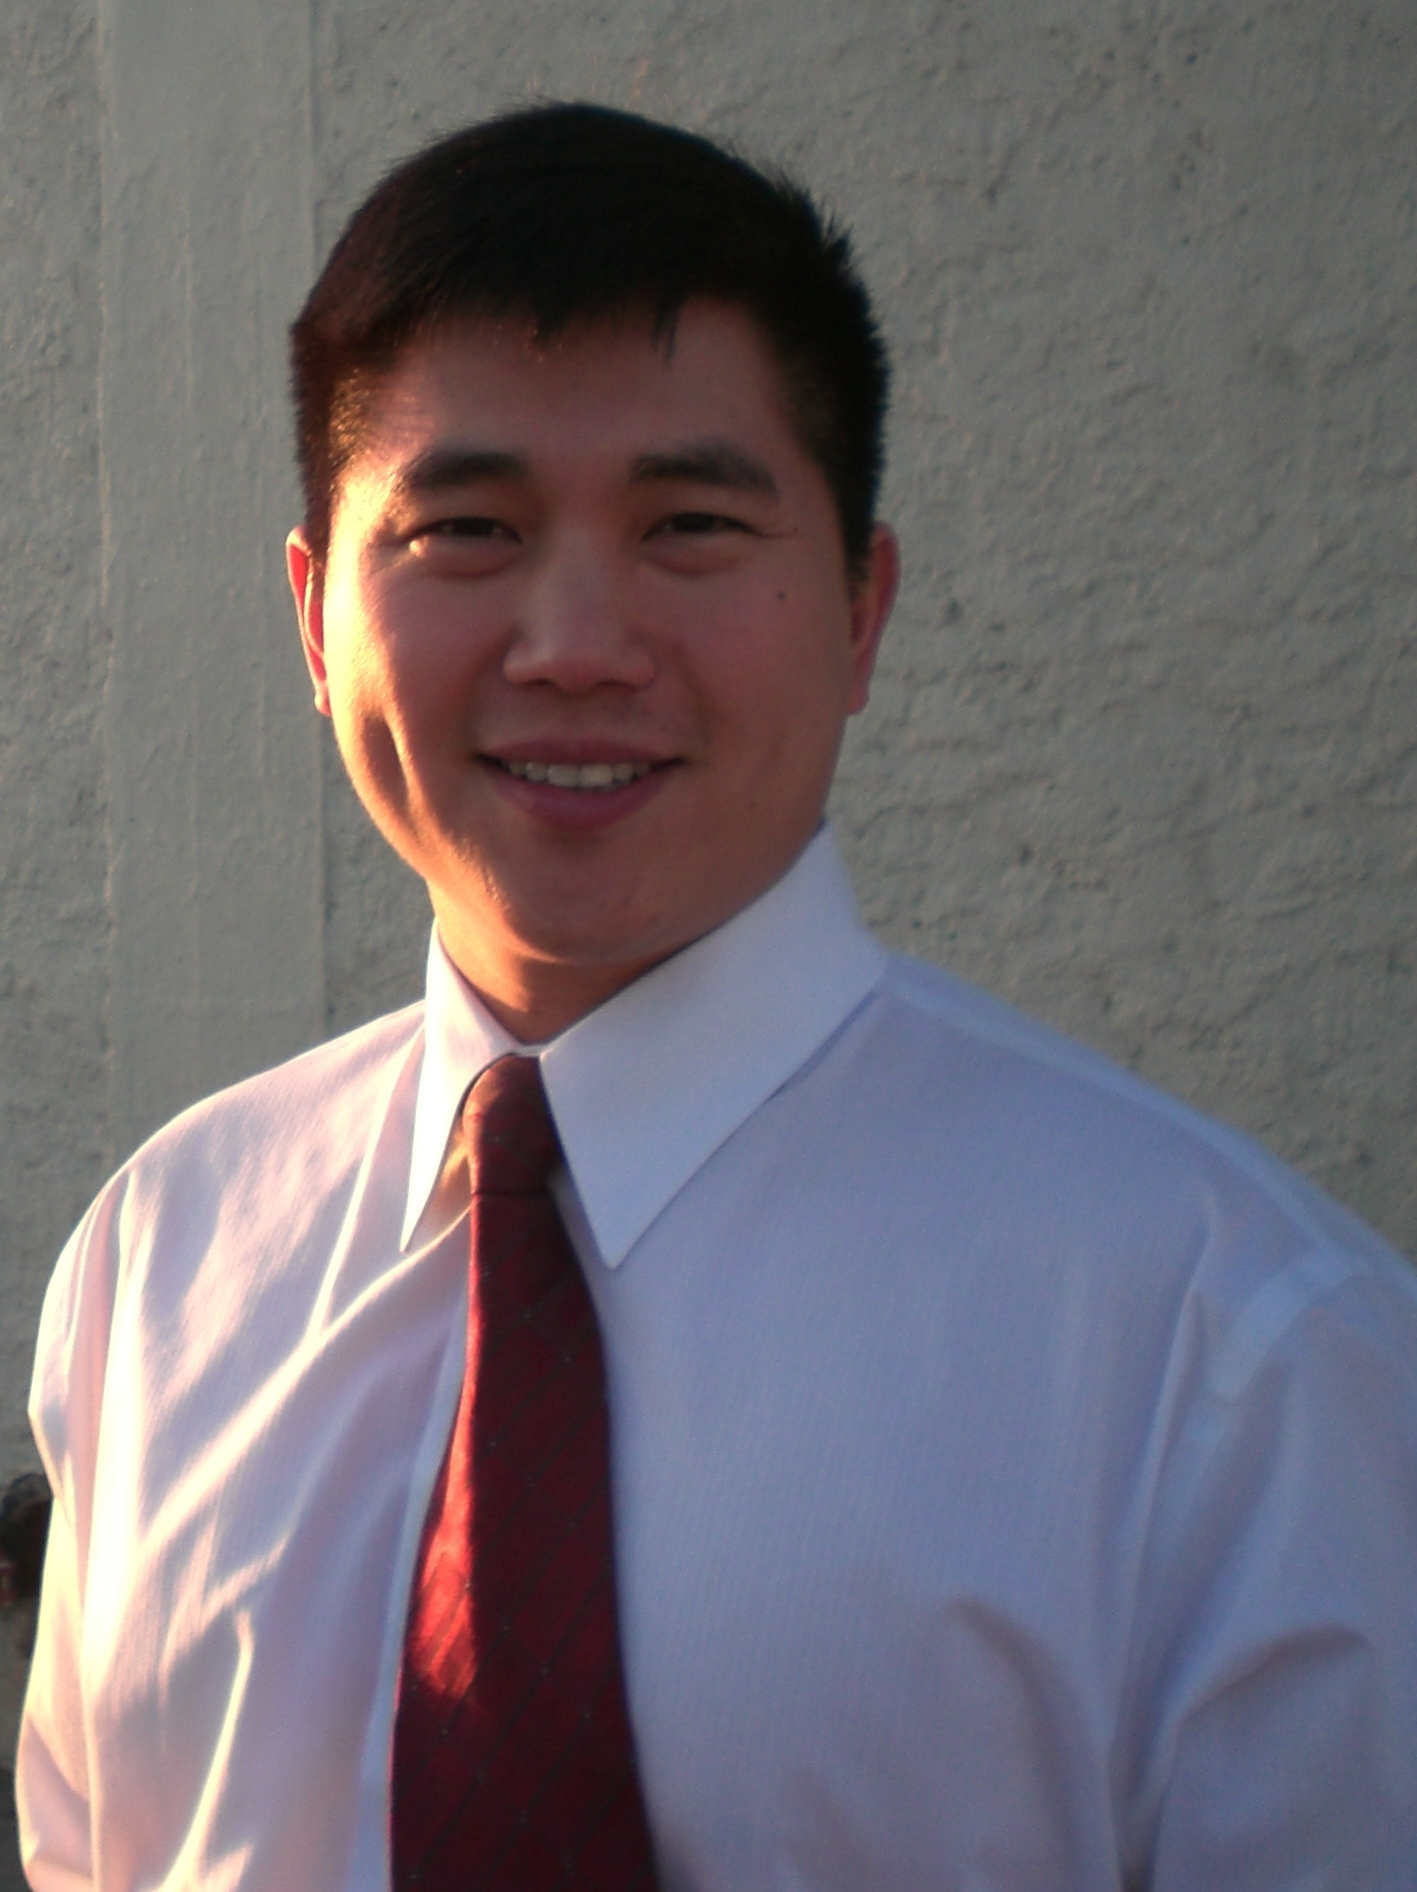 Peter Chen | Health and Life Insurance Agent | Gainesville, FL 32607